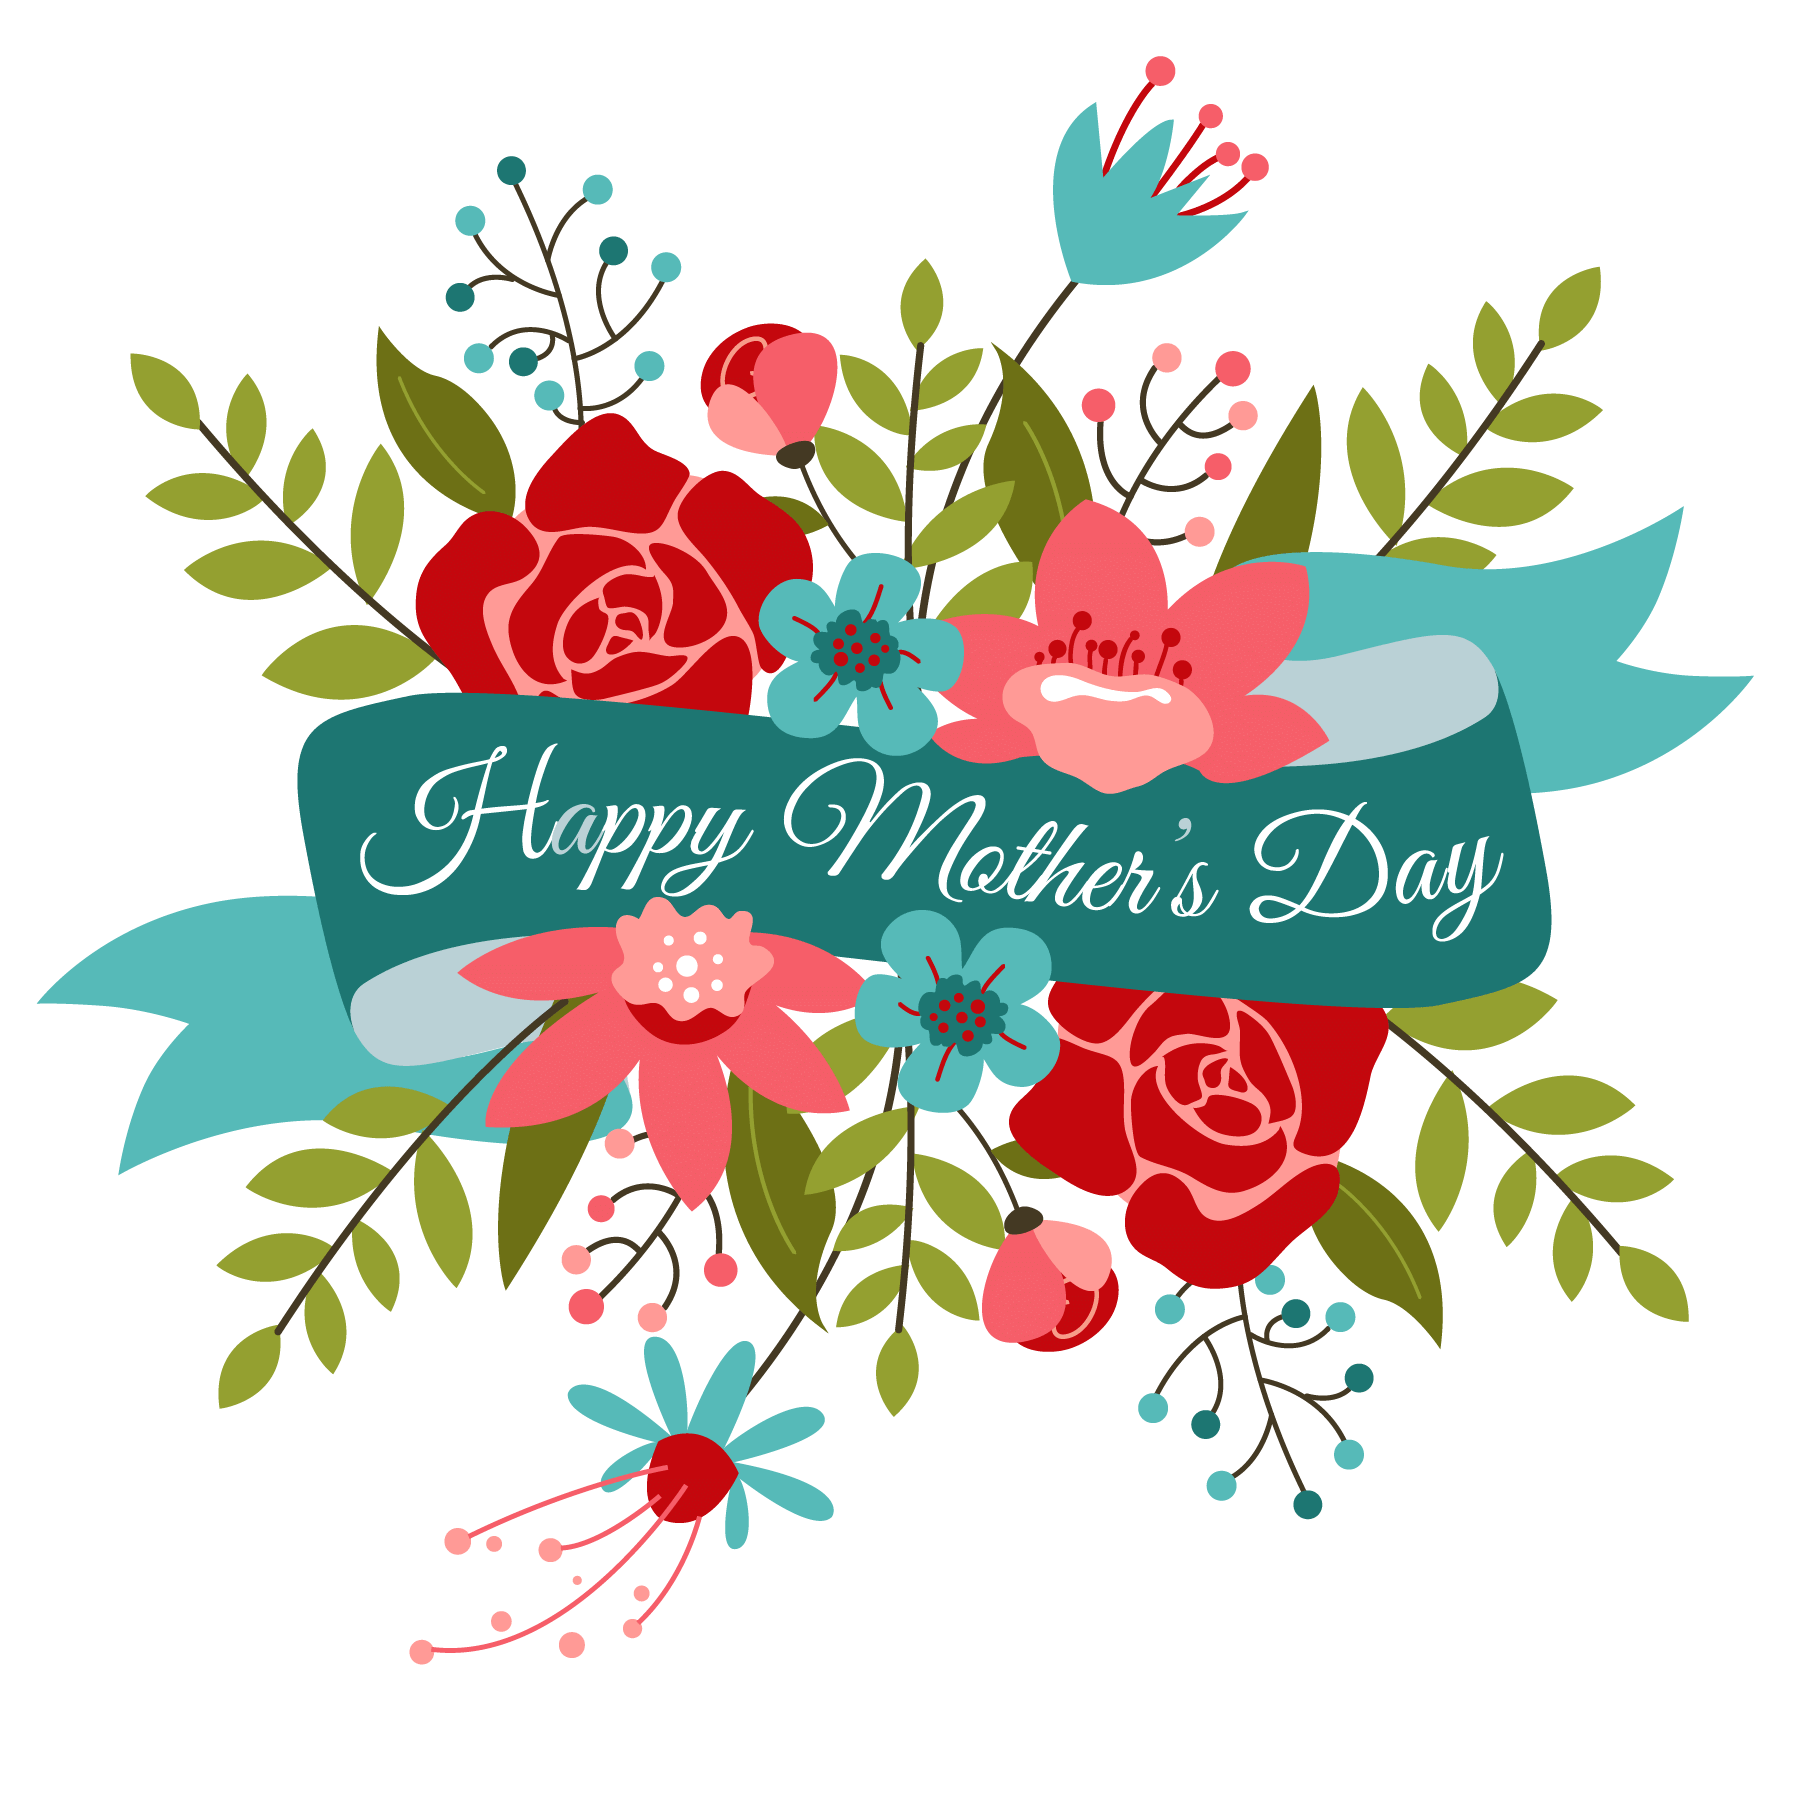 Mothers Day HD PNG - 95030